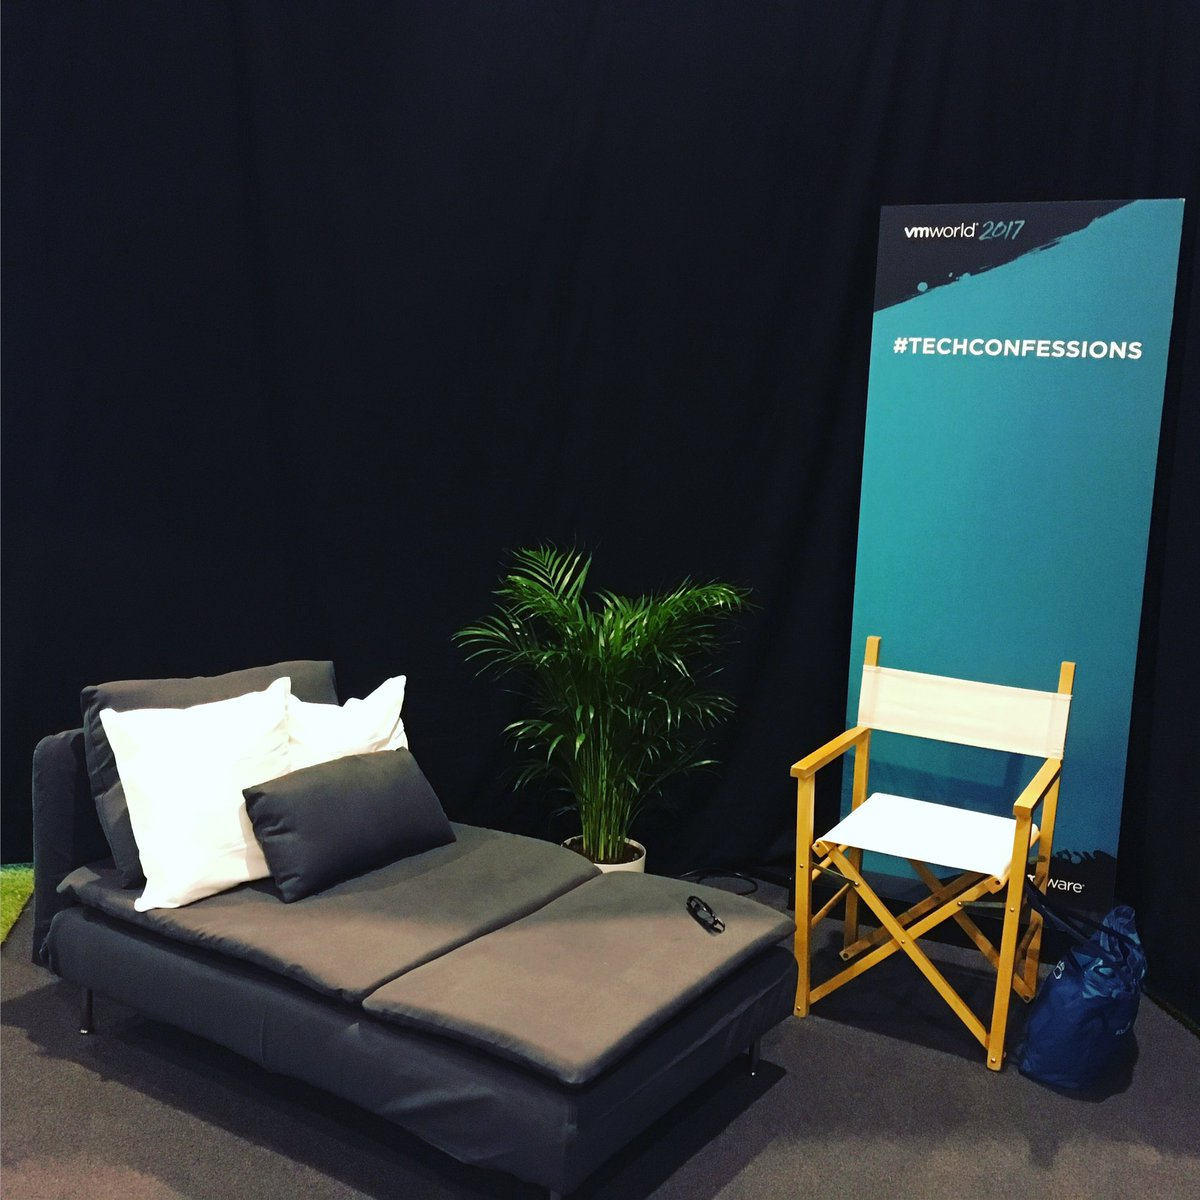 What better way to relax than putting your feet up this afternoon on #techconfessions? #vmworld (Hall 8.1 VMplace)<br>http://pic.twitter.com/tLstwQhXE5